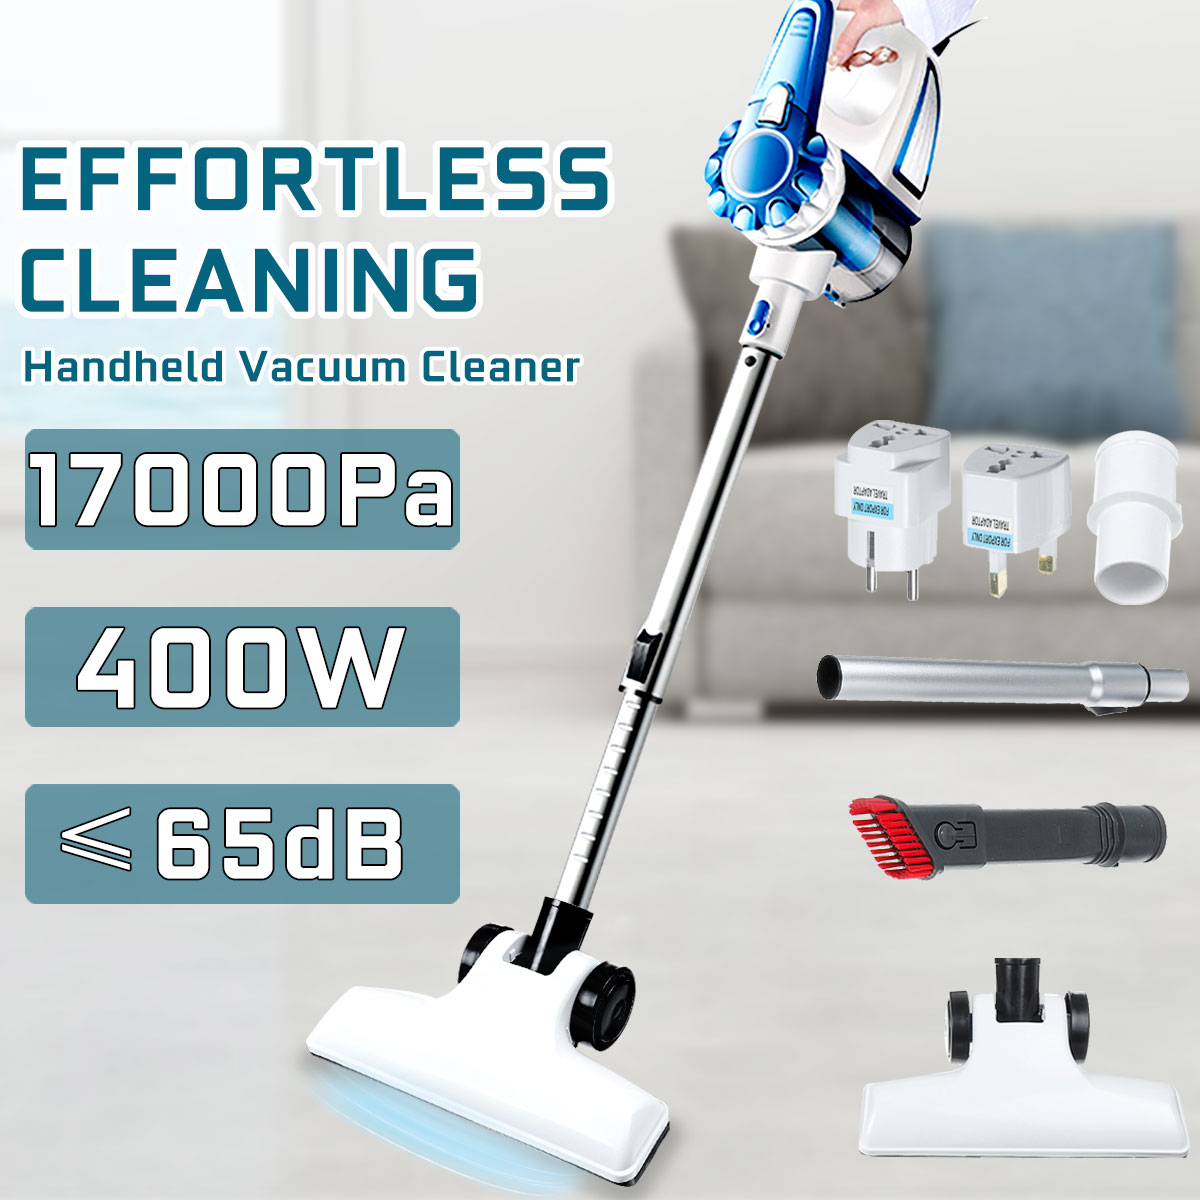 17000PA 400W Handheld Vacuum Cleaner Hepa Super Powerful Suction Cleaning Tool Set Vacum Cleaner For Home Car